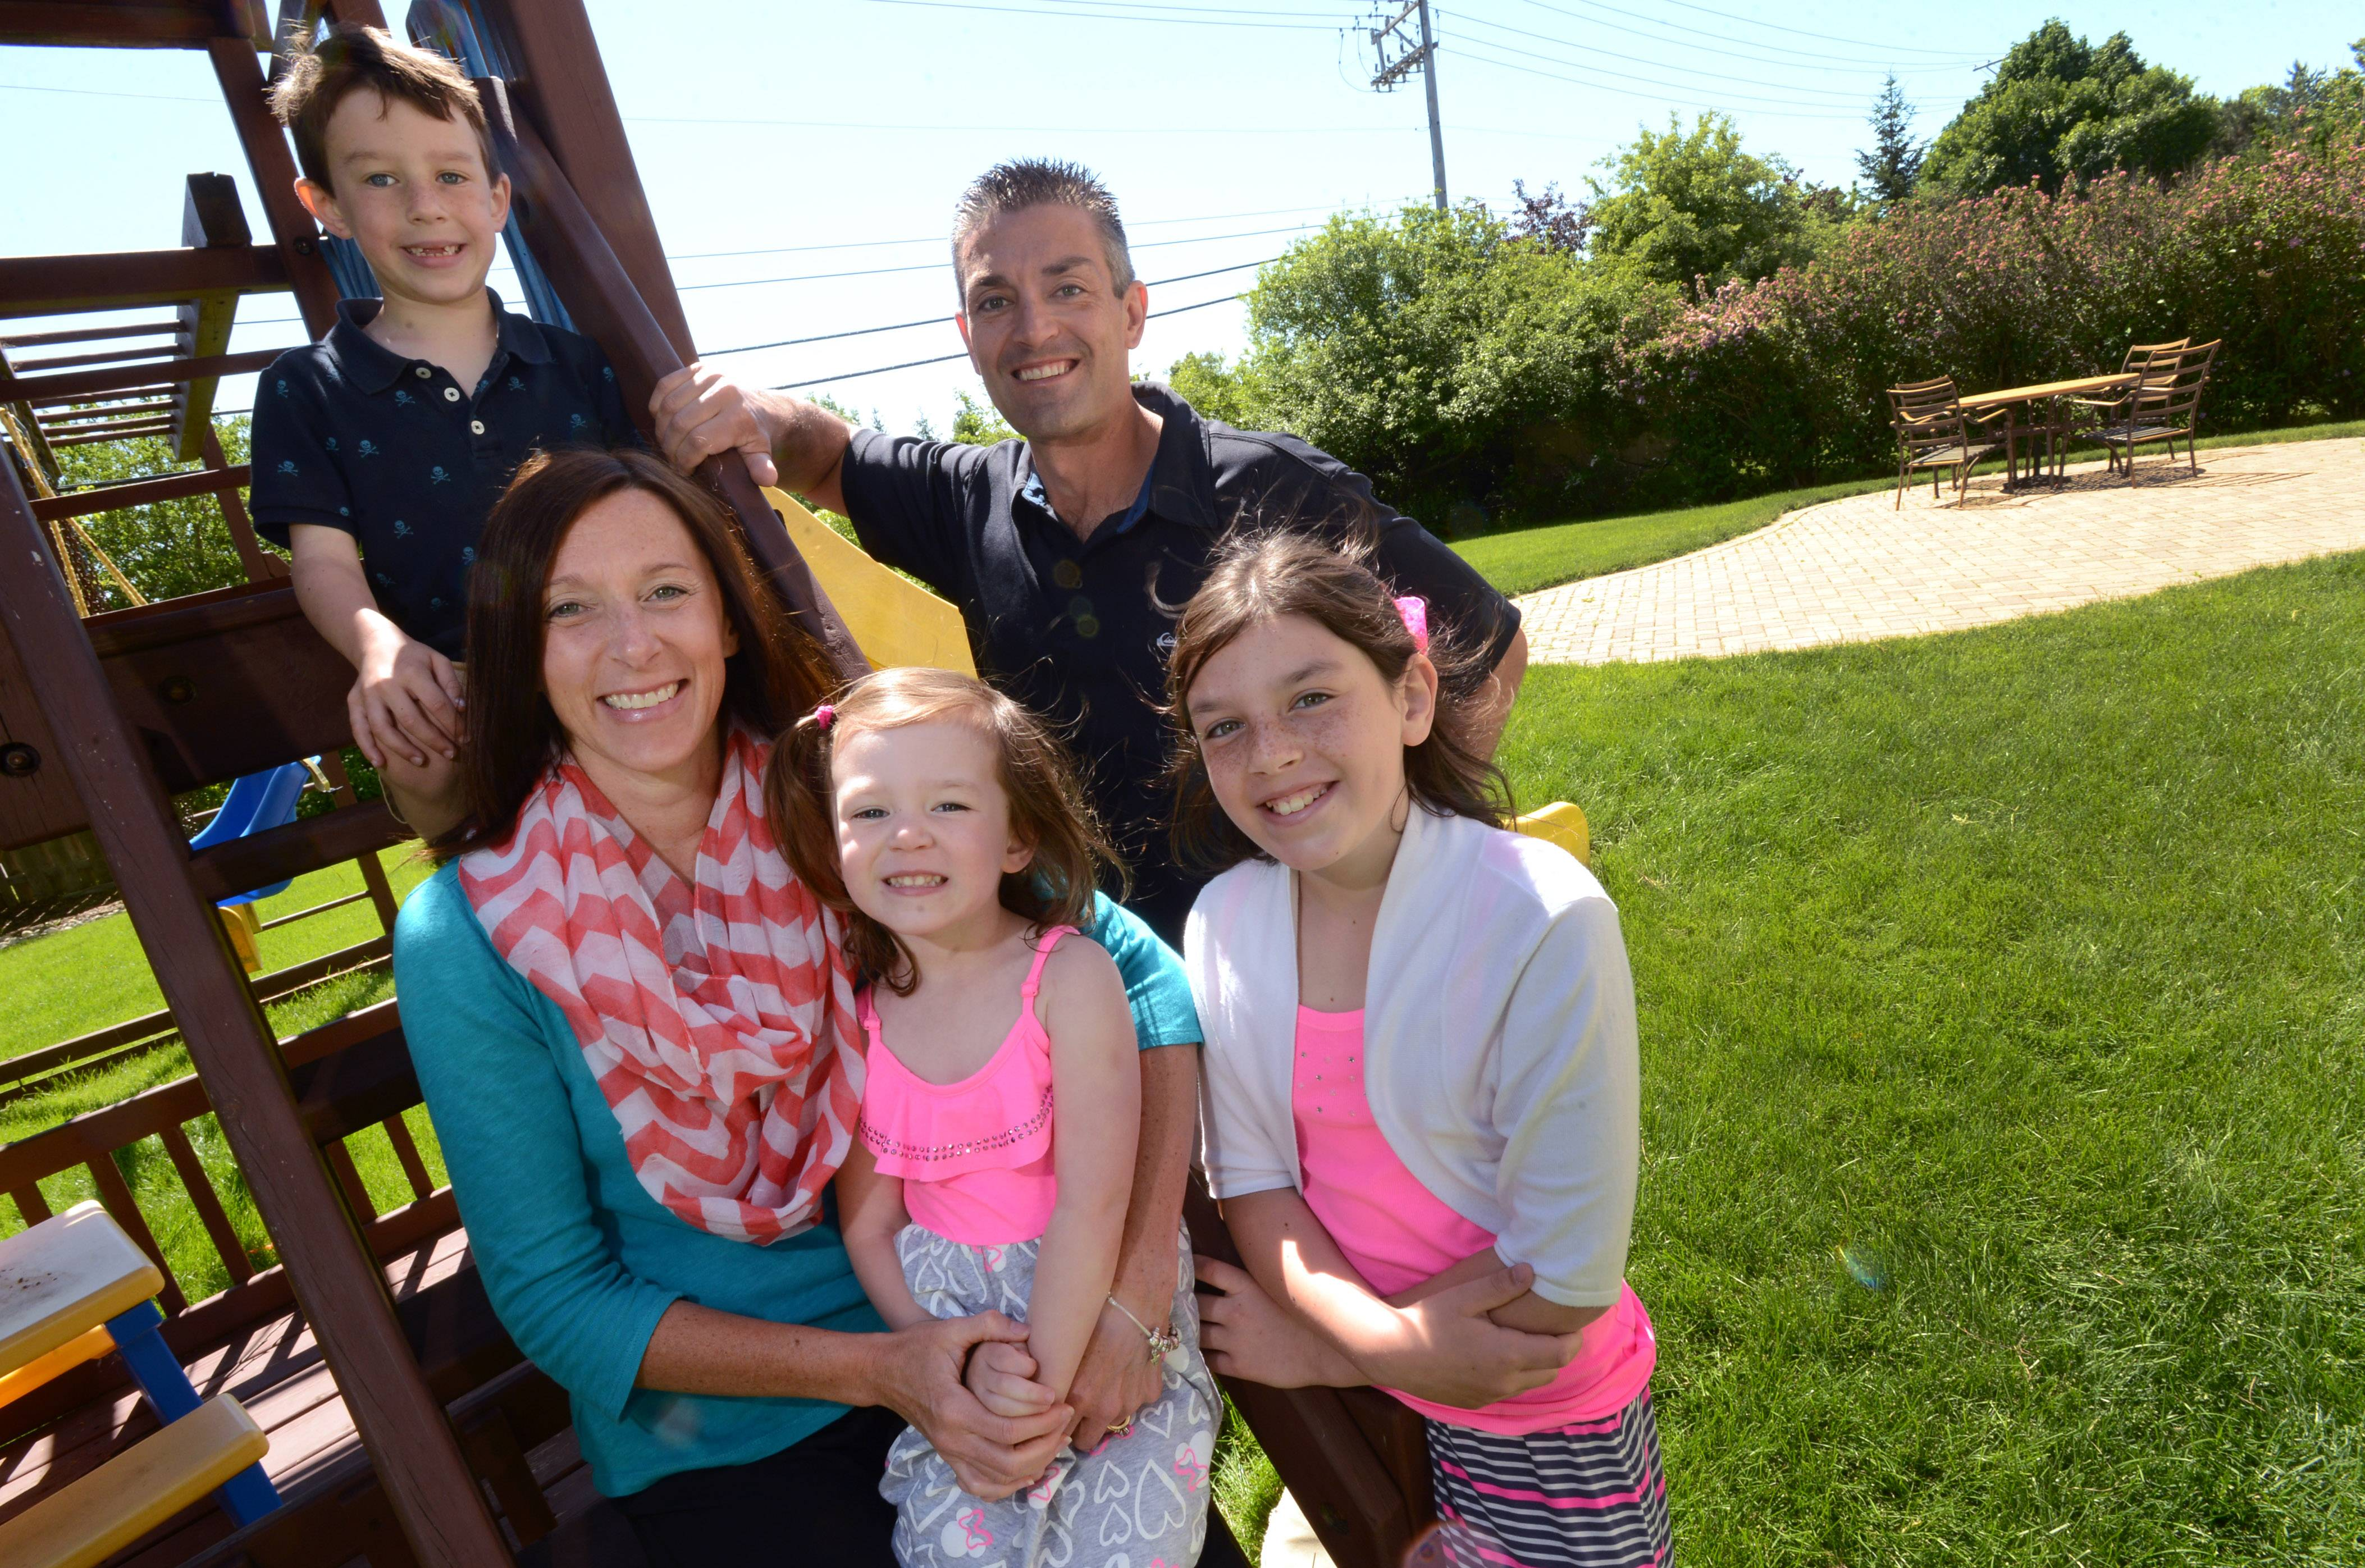 Jennifer and Jason Ness and their three children Max, 6, Lily, 3, and Samantha, 10, in their Lake Zurich backyard. They won the grand prize package in the Get Your Summer On contest and plan to get a new dining table with chairs, a grill and fire pit.